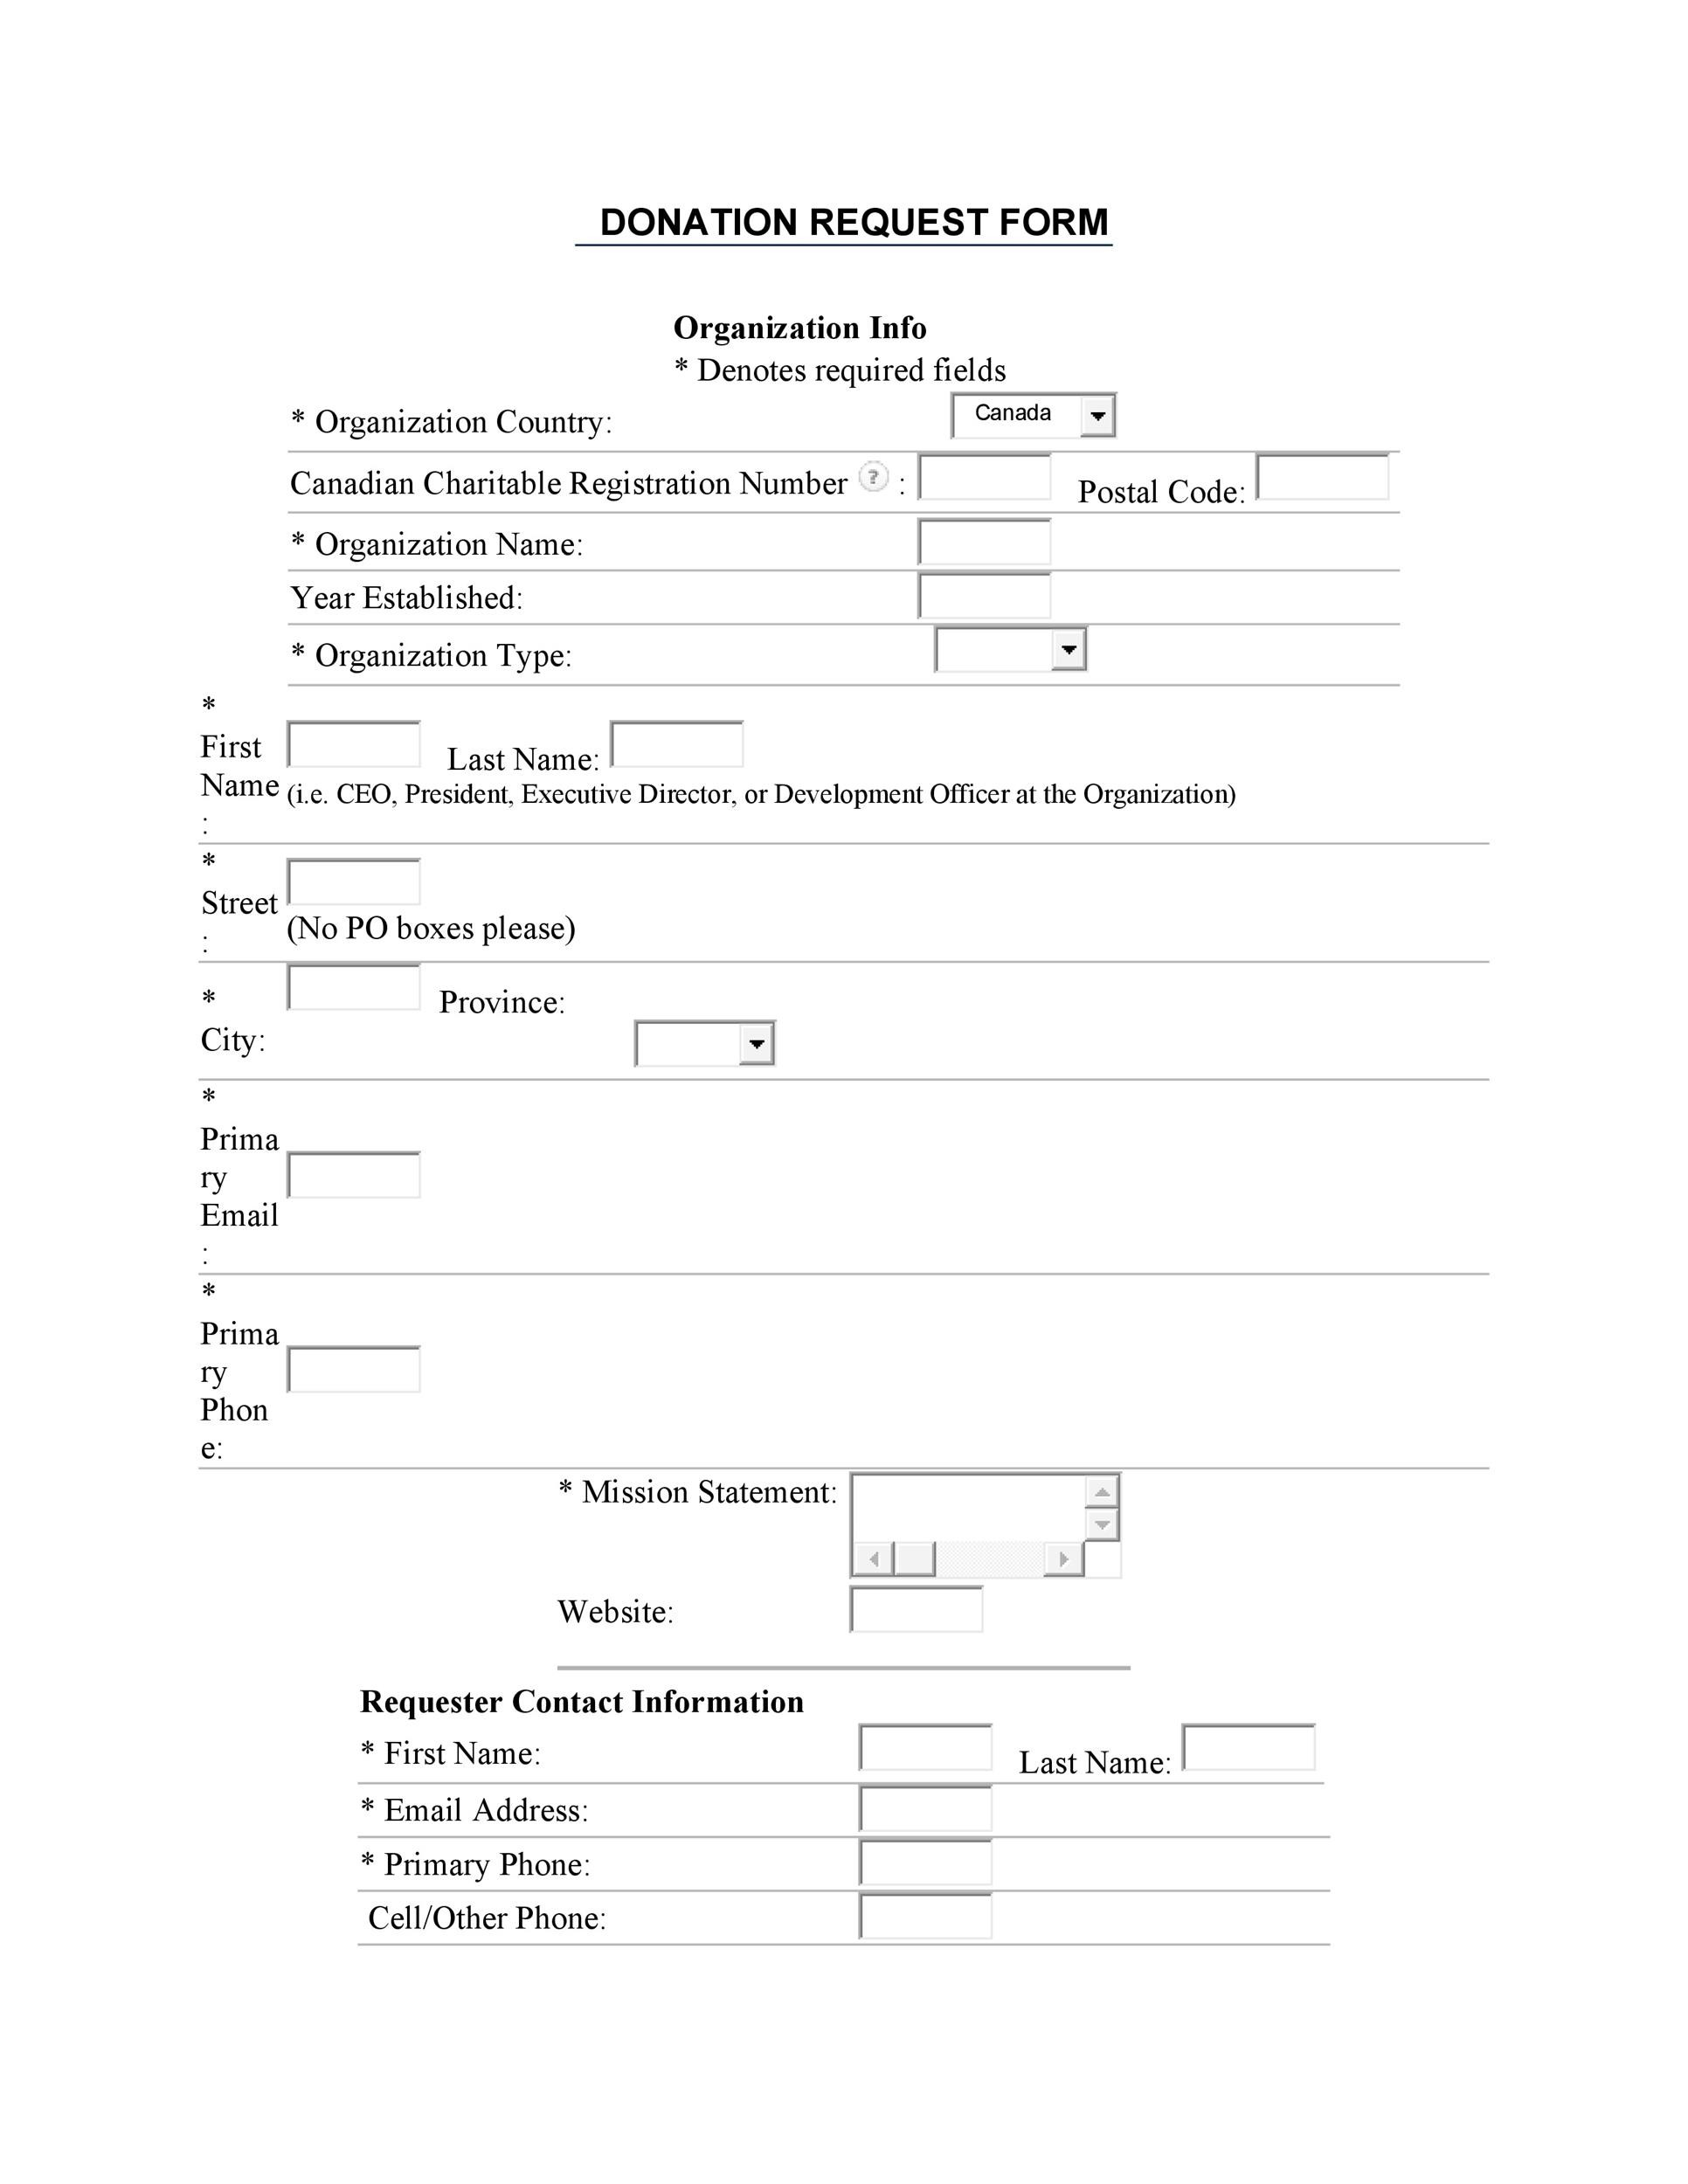 43 FREE Donation Request Letters  Forms - Template Lab - donation request form